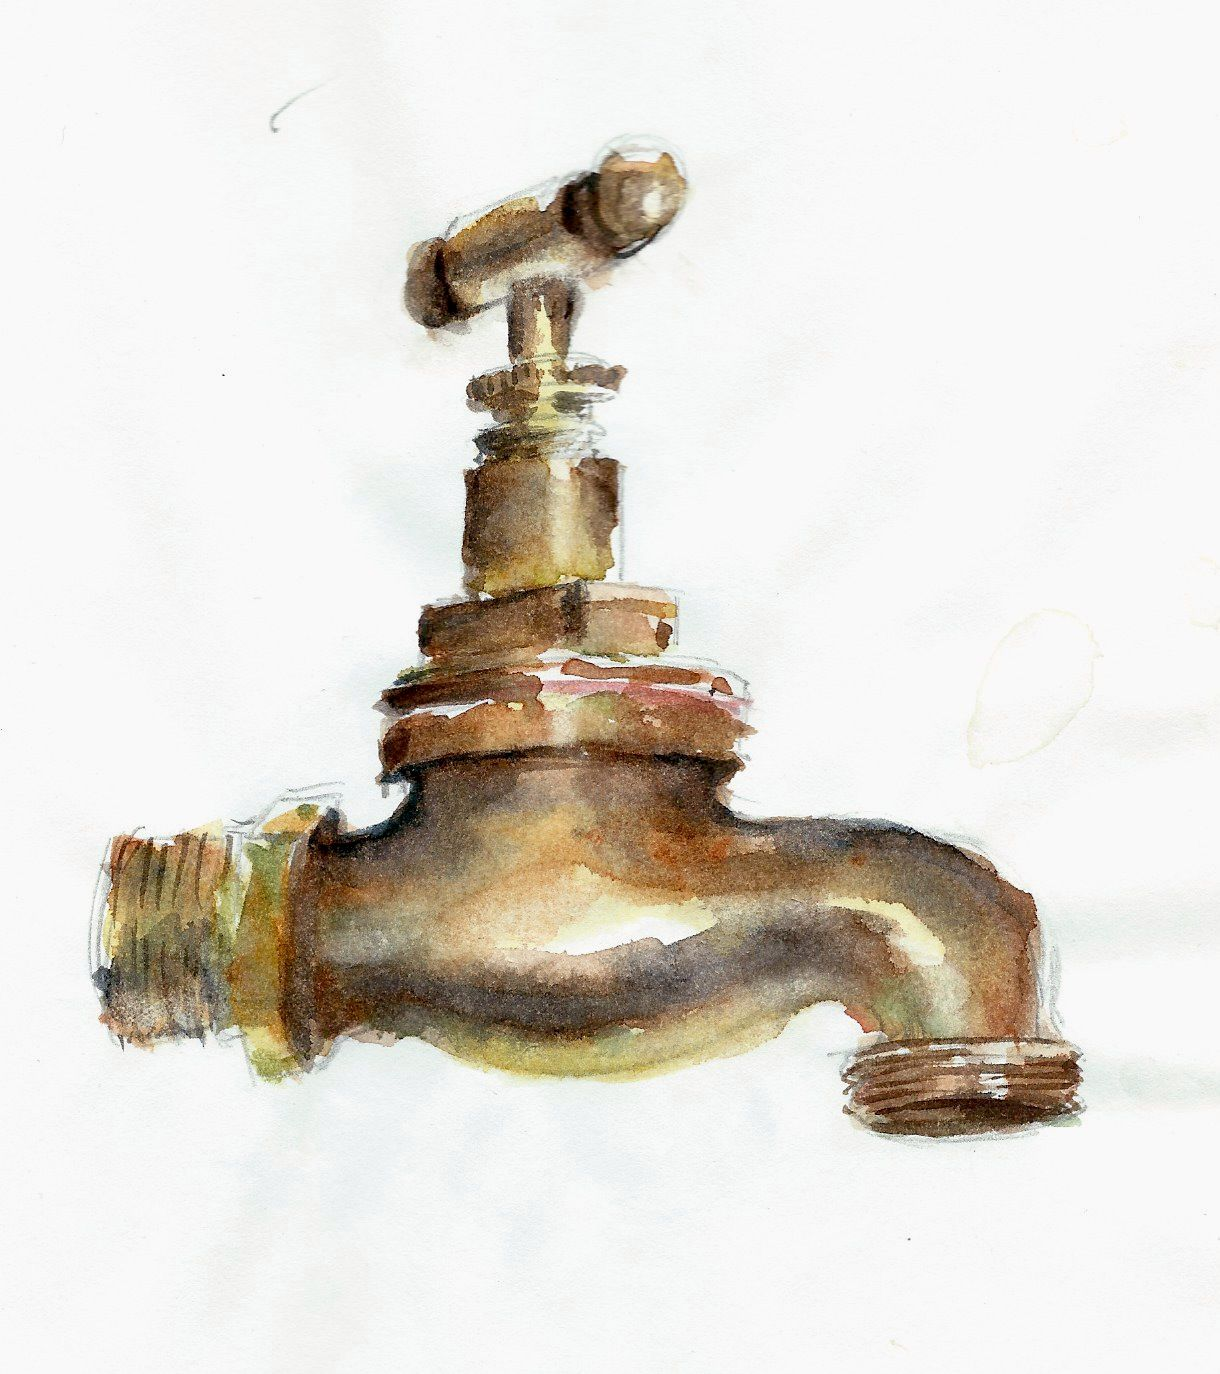 This Is A Painting I Did Of One Of Our Old Garden Taps I Love